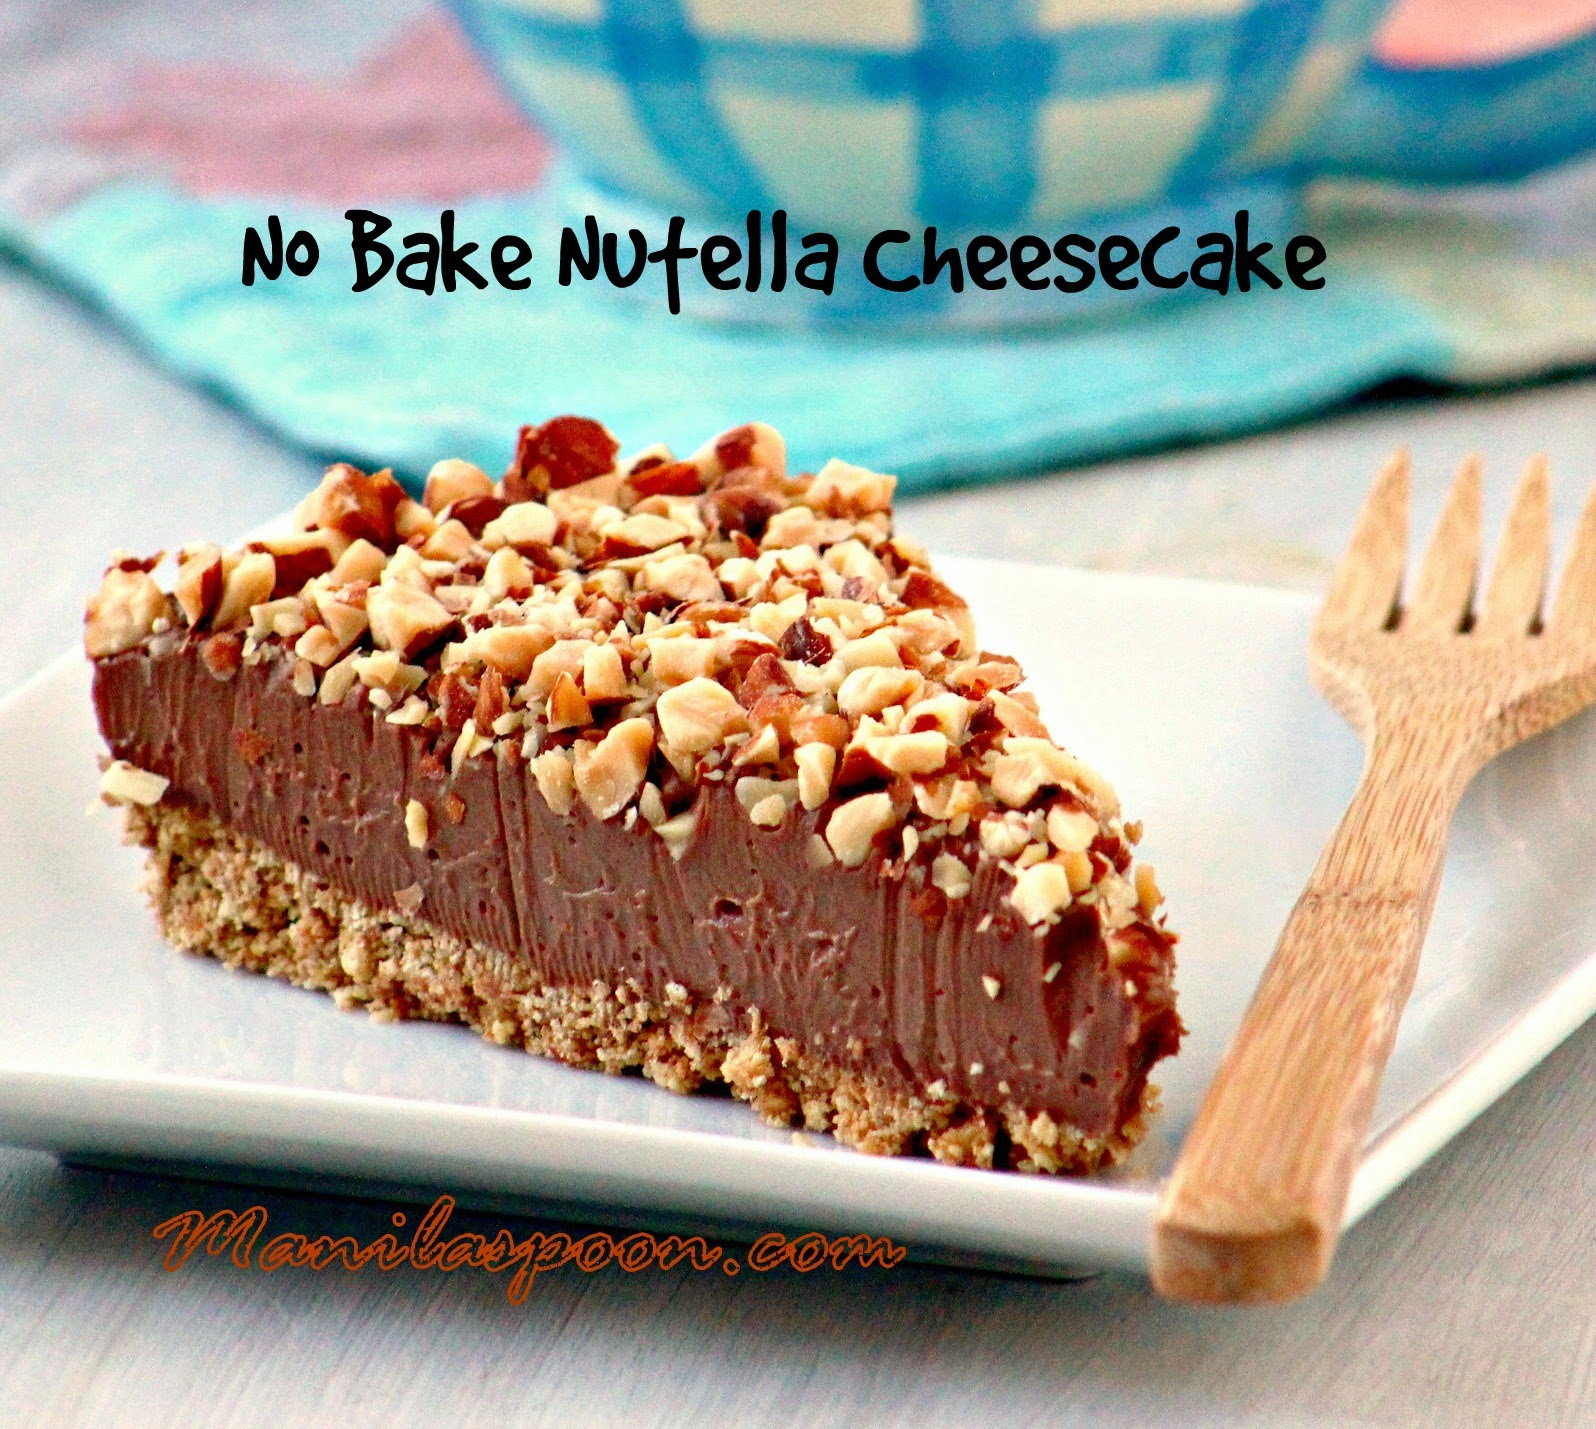 cheesecakes i mini cheesecakes iii mini no bake nutella cheesecakes ...